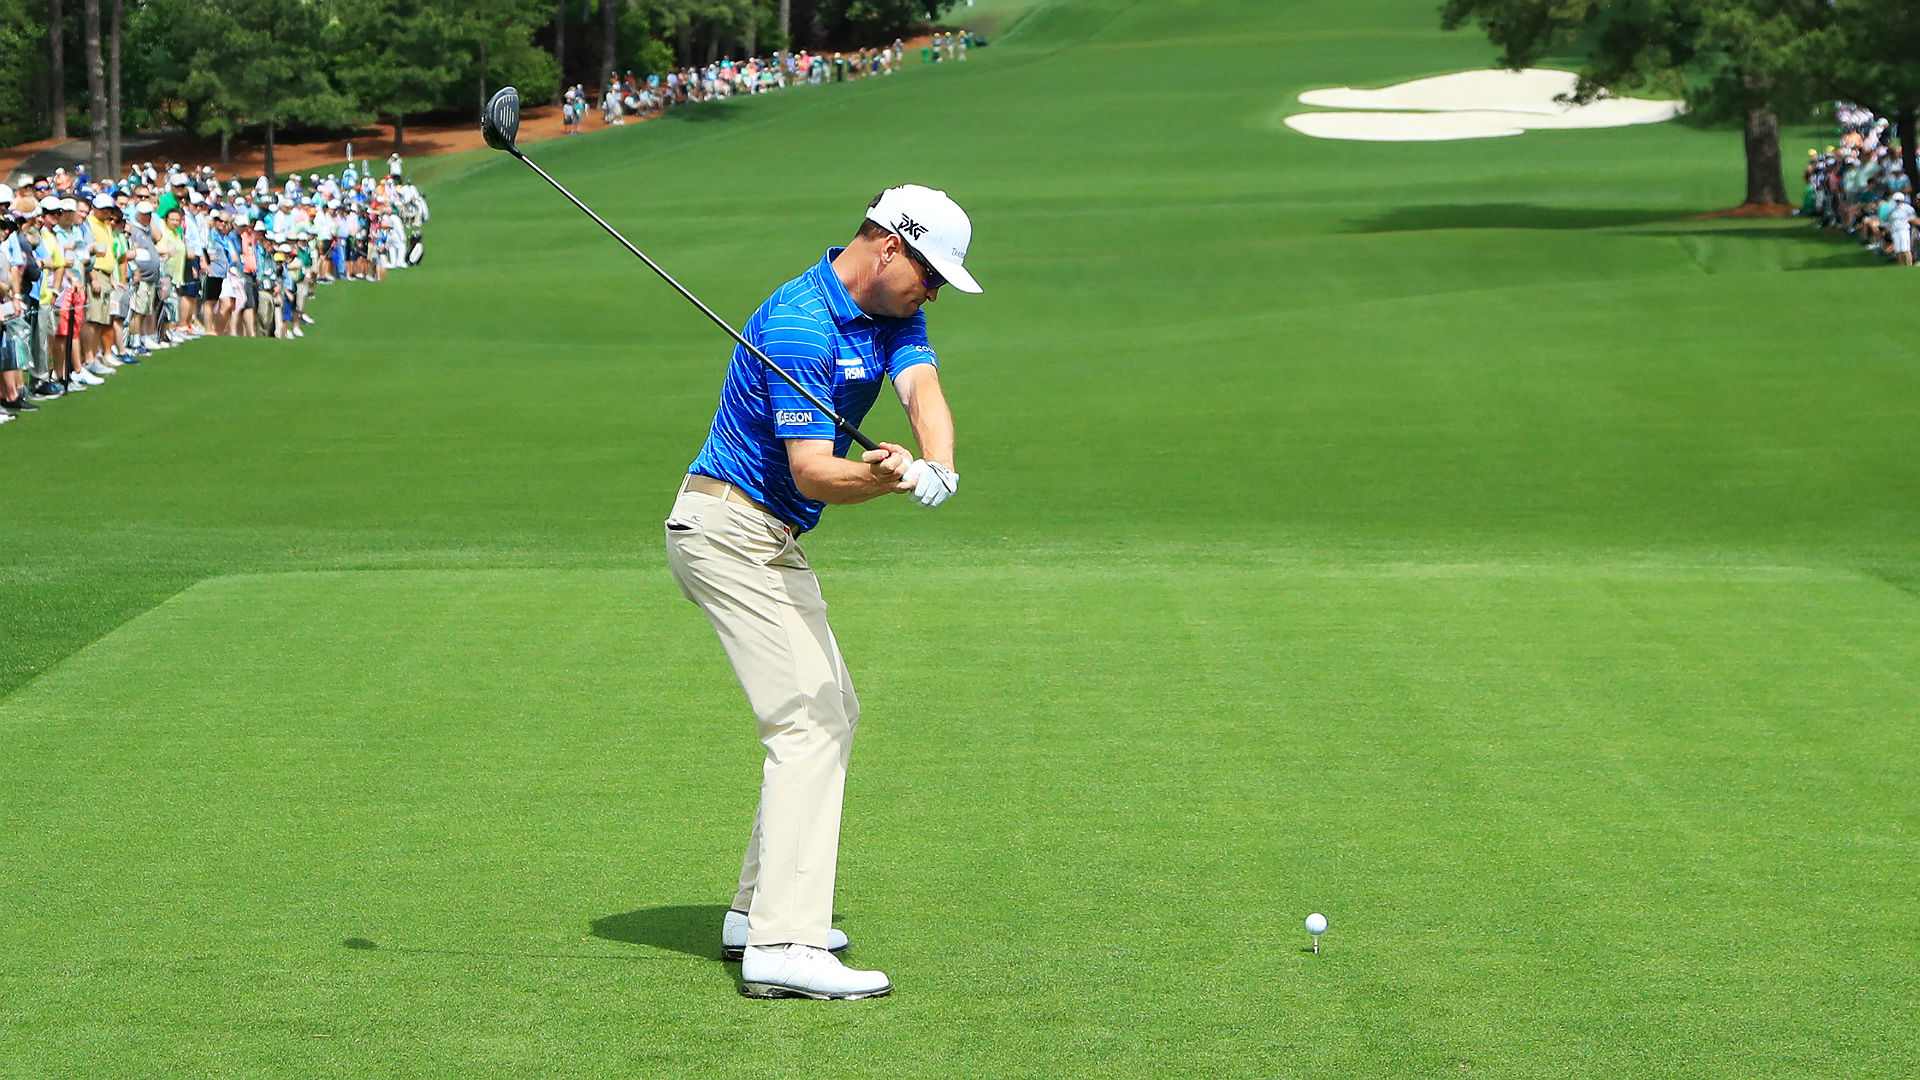 Zach Johnson knocks ball off tee with practice swing at the Masters